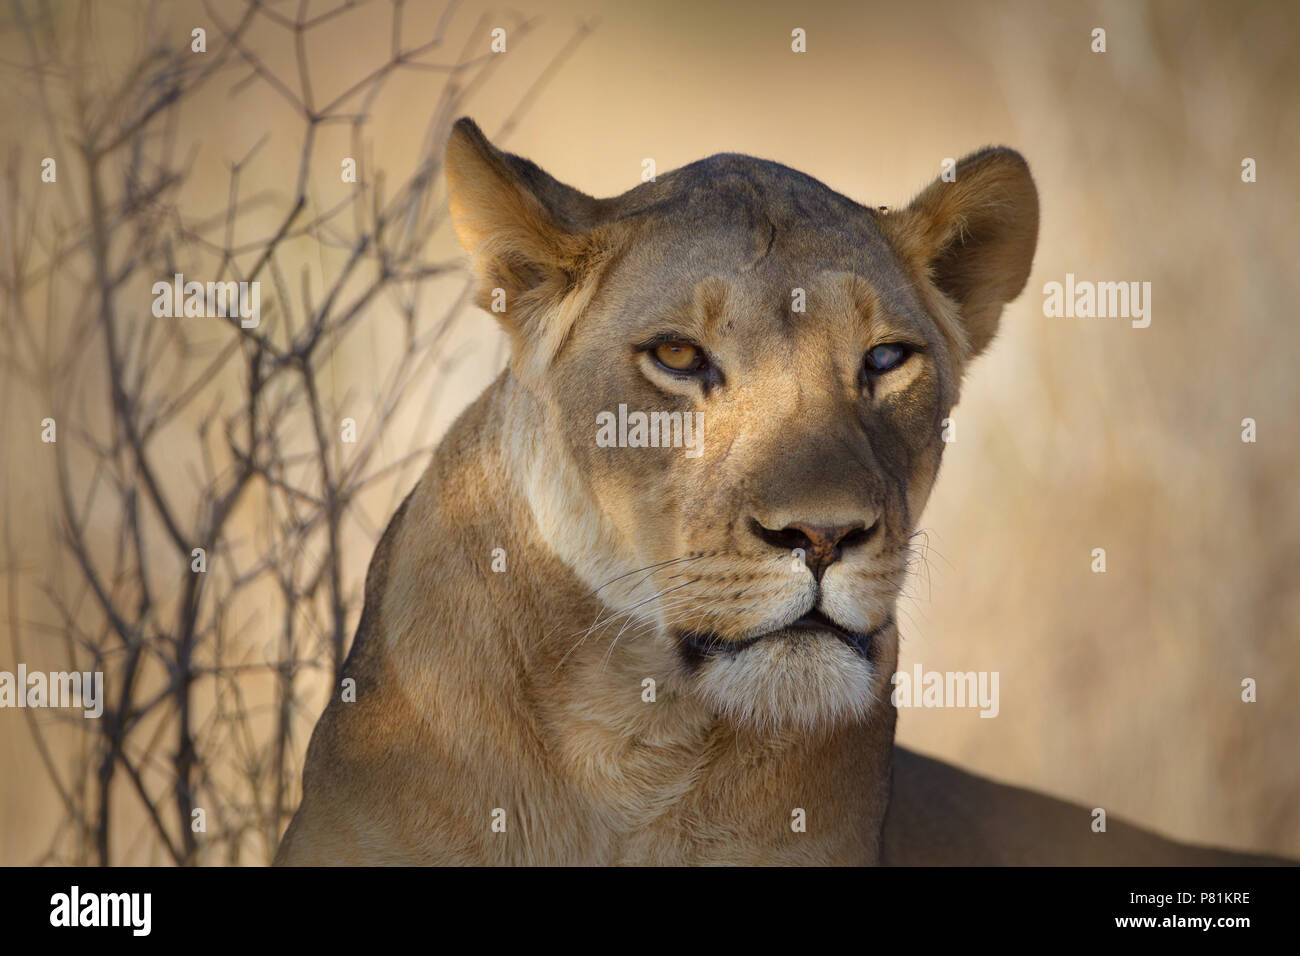 Silver Eye Lioness Portrait close up with an intimidating fierce looking lion - Stock Image